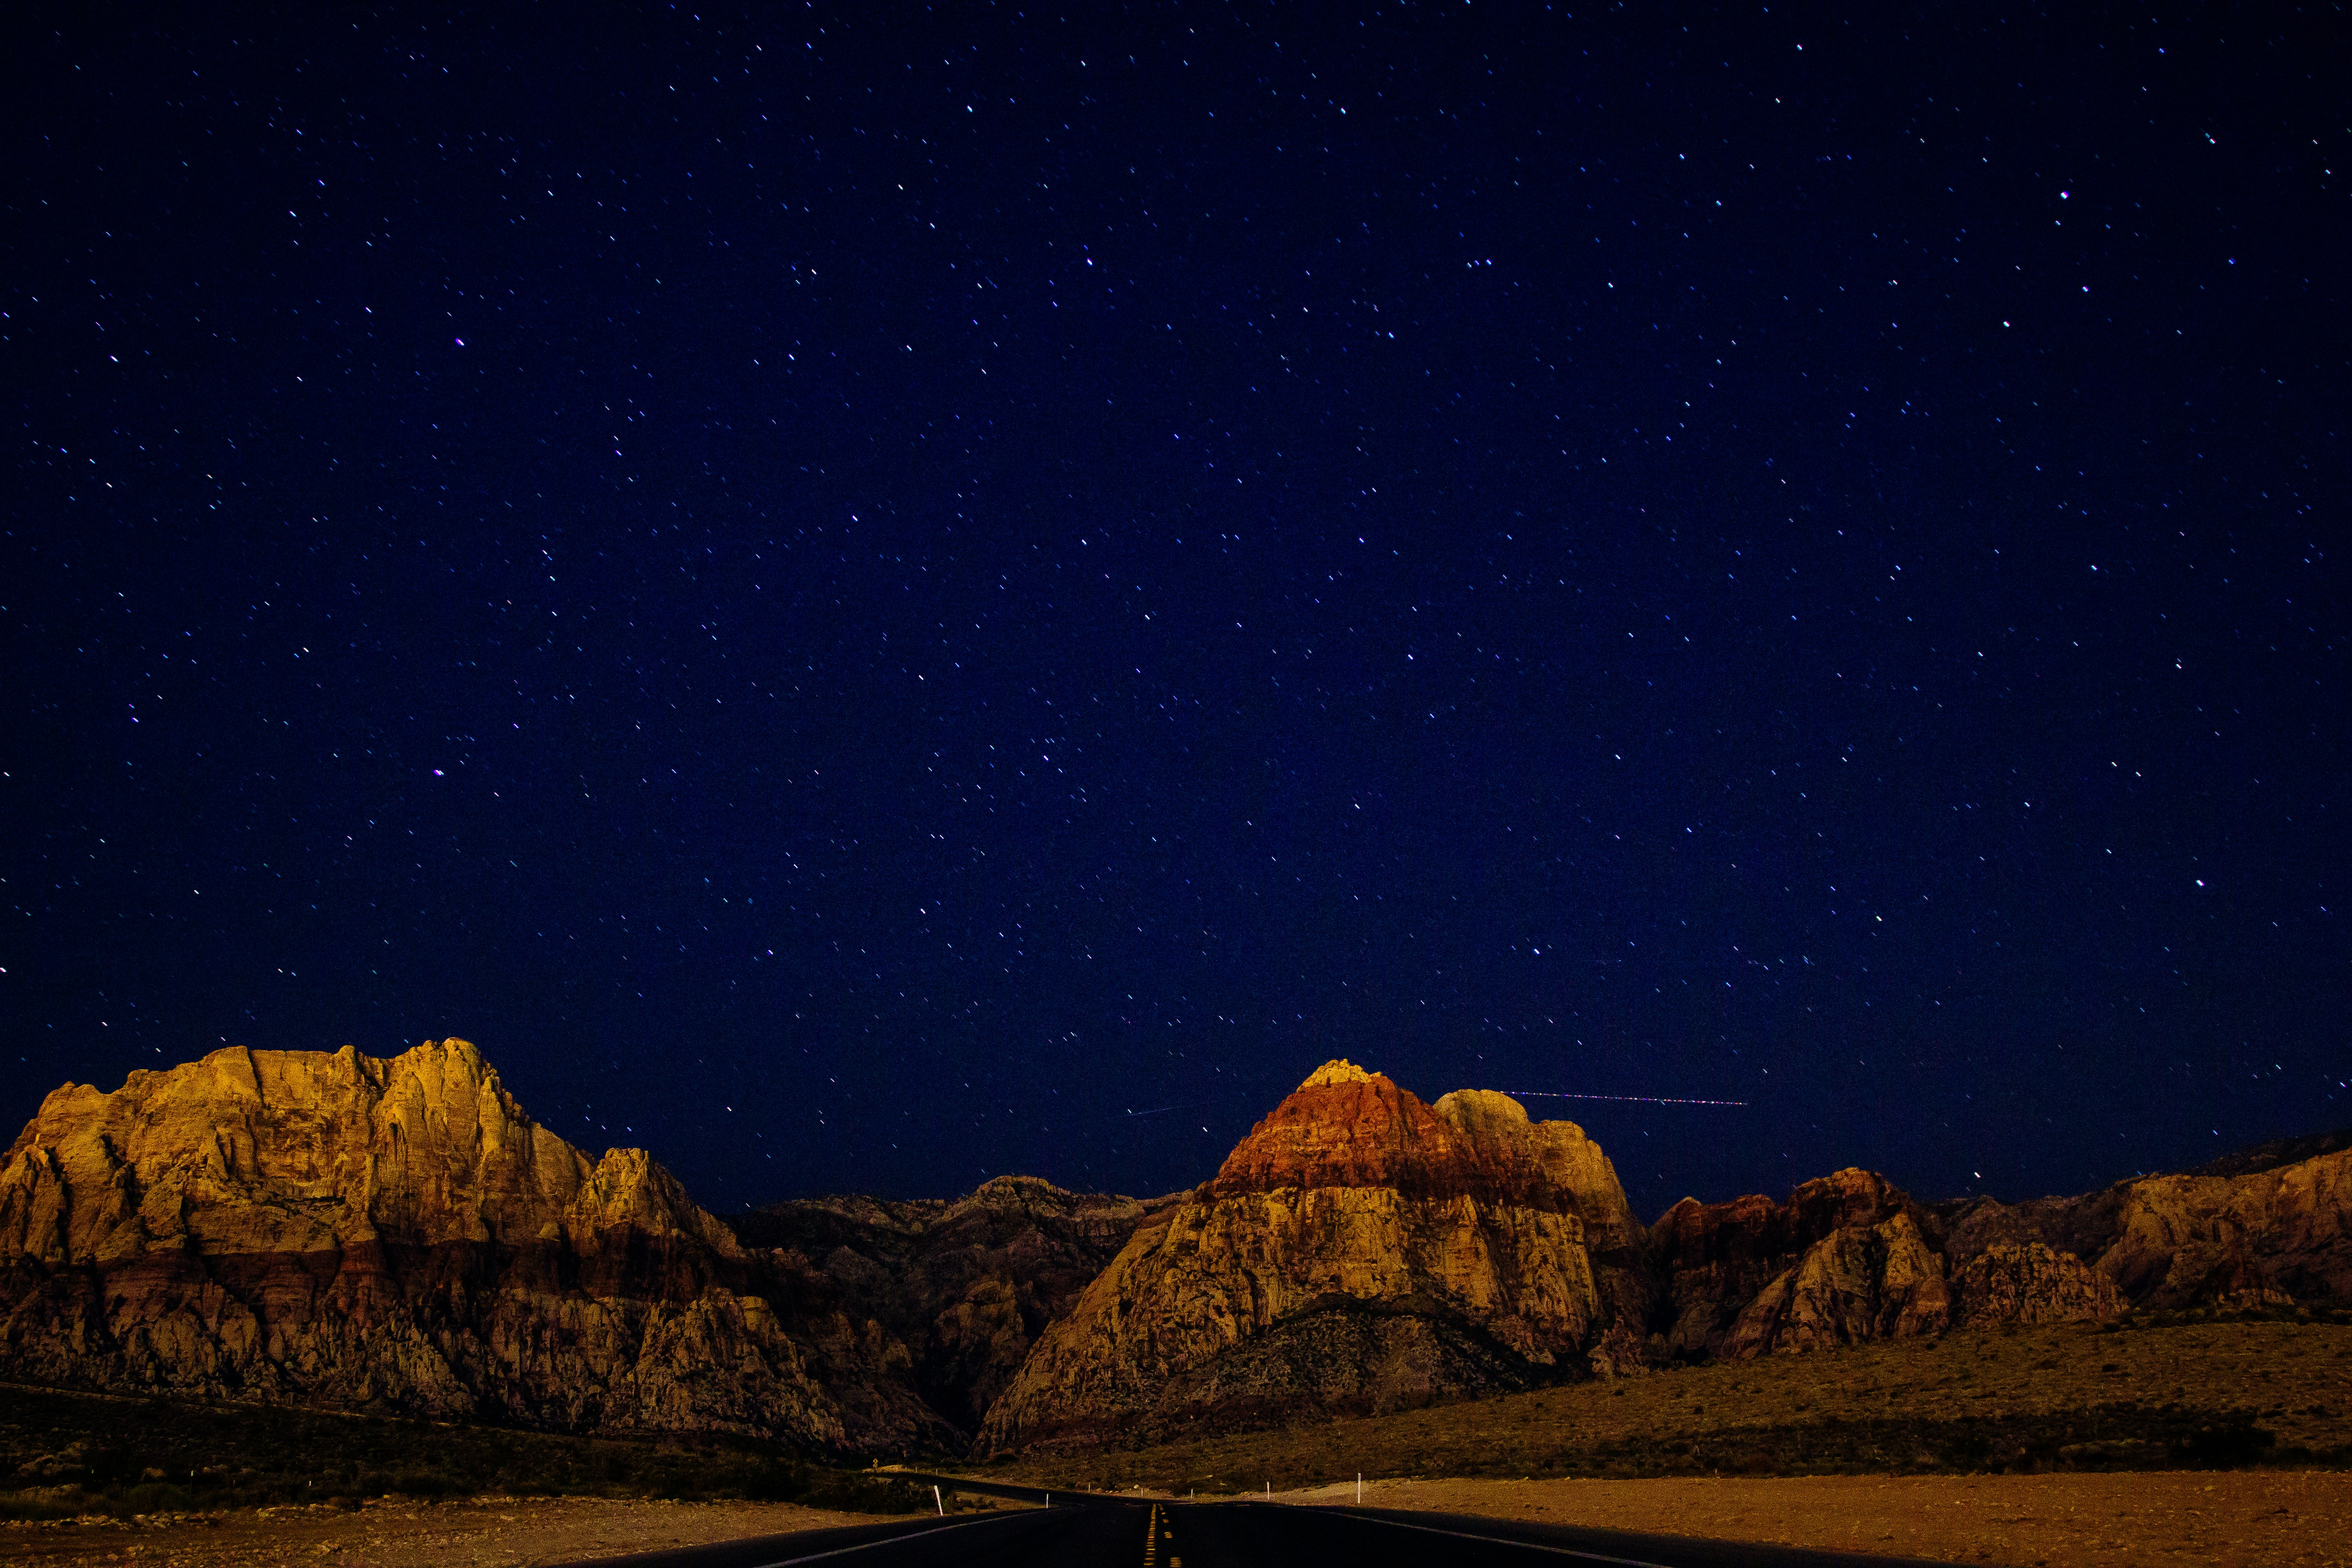 The deep blue sky full of stars over the hills and the road in Las Vegas.